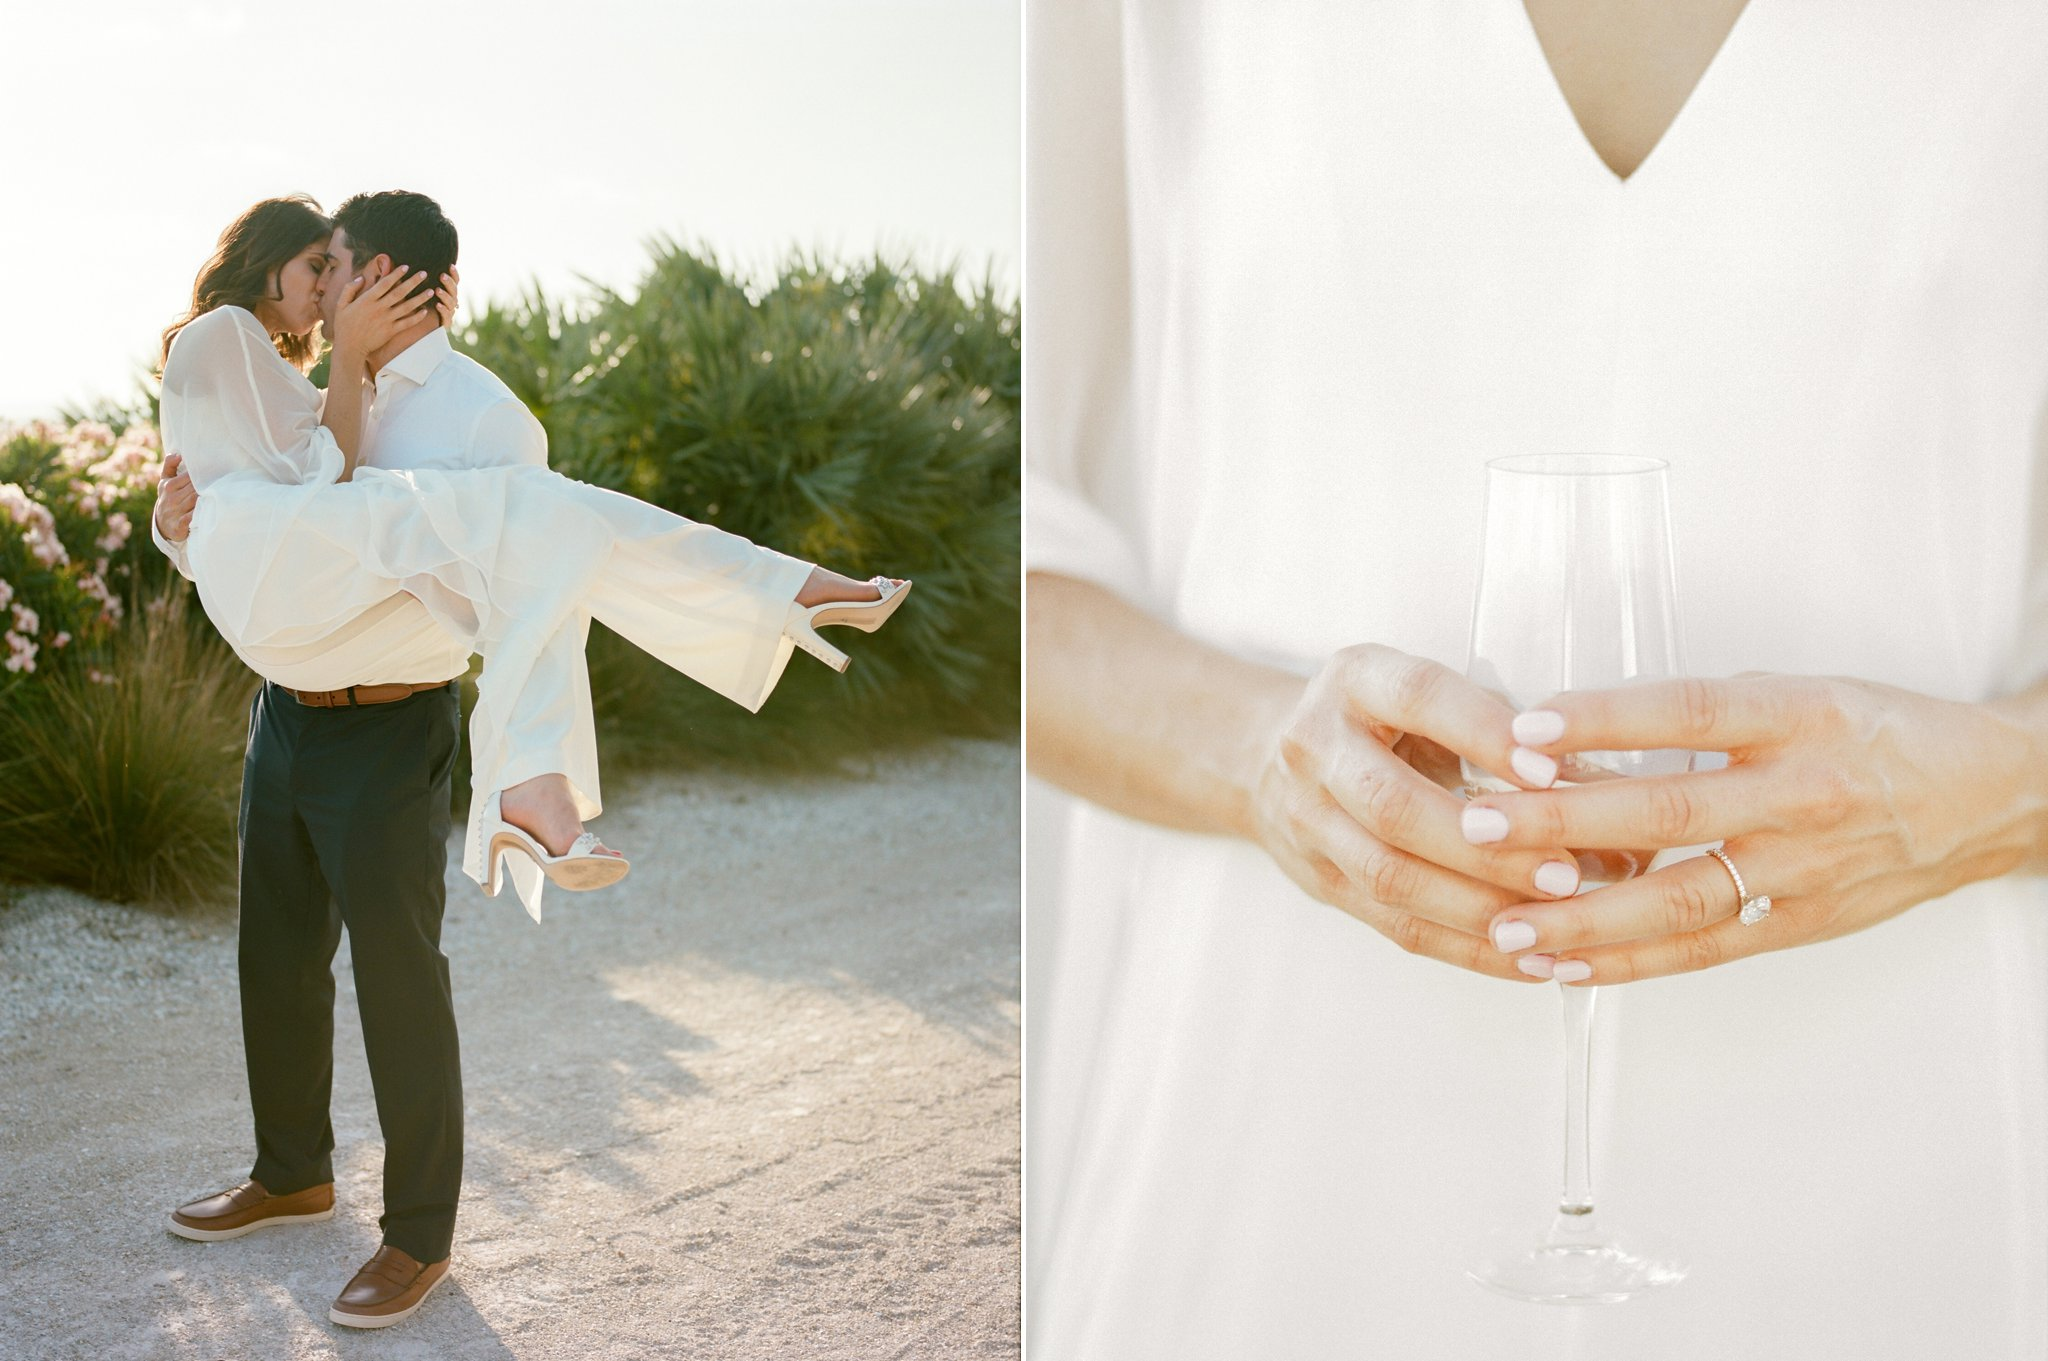 jw marriott marco island engagement session marco island wedding photographer shannon griffin photography_0024.jpg